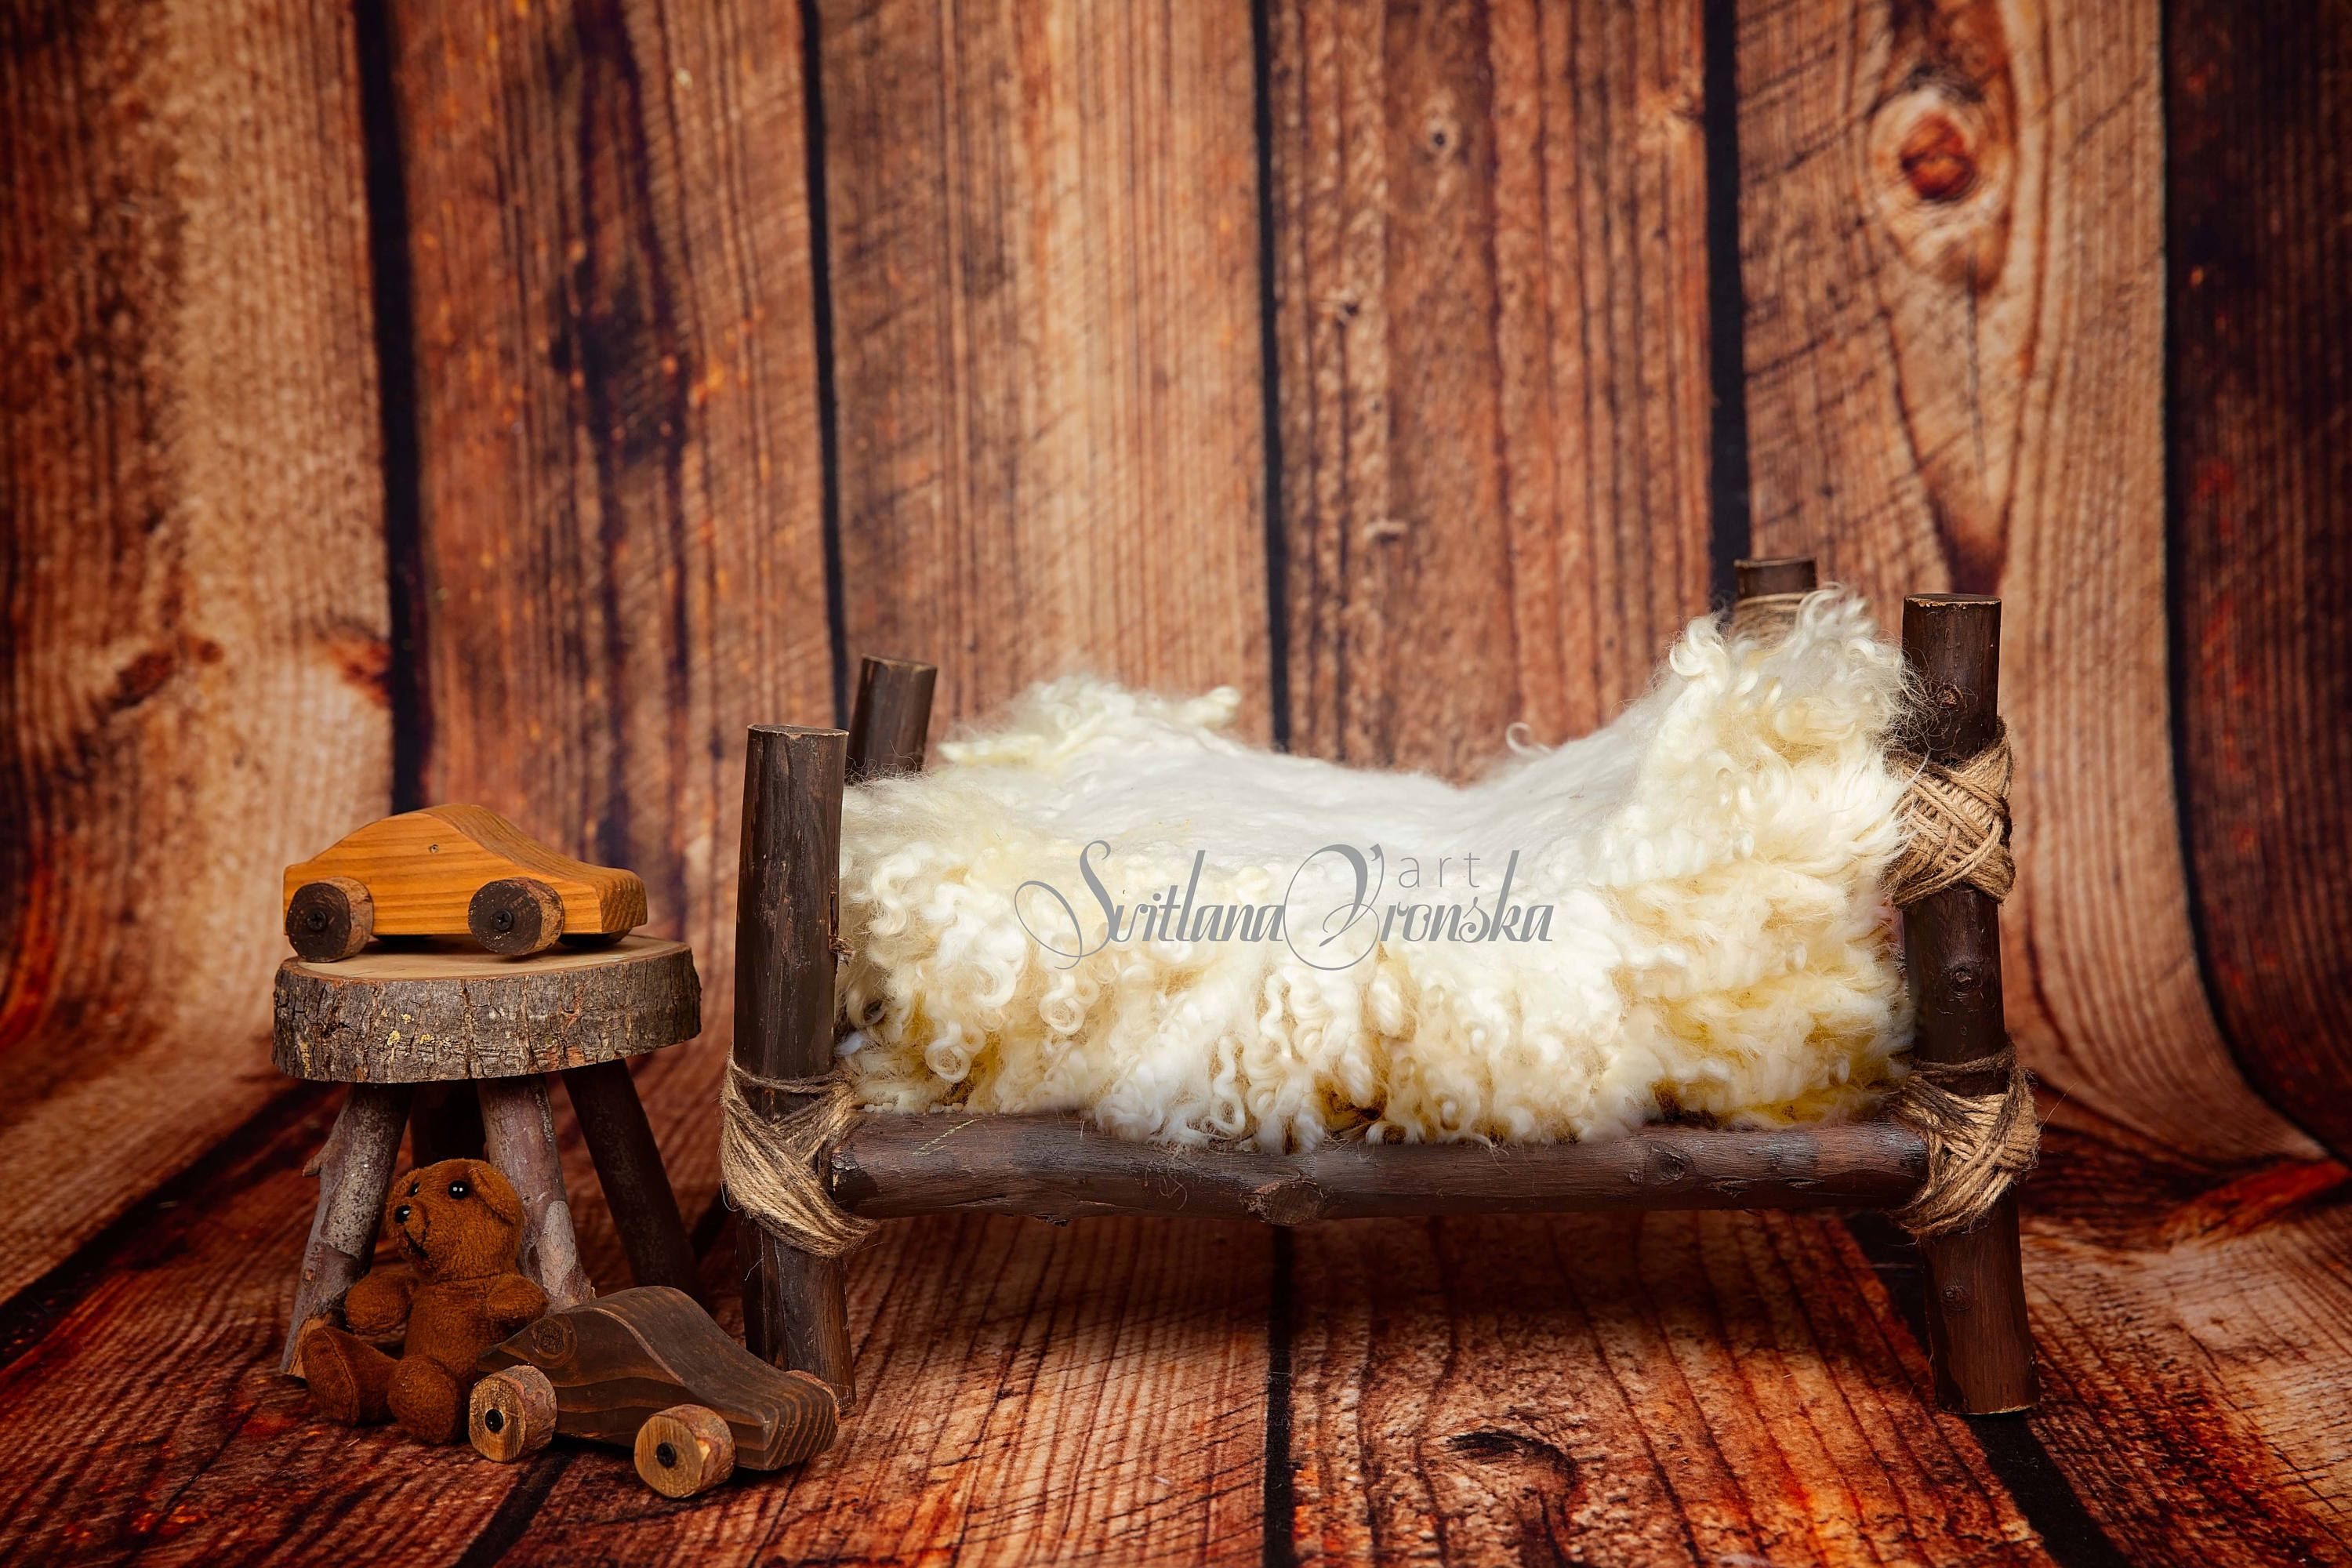 AOFOTO 3x5ft Baby Photography Background Infant Photo Shoot Backdrops Dreamy Log Cabin Florets Floor Planet Tree Sky Themed Drops Kid Child Artistic Portrait Abstract Scene Studio Props Video Digital